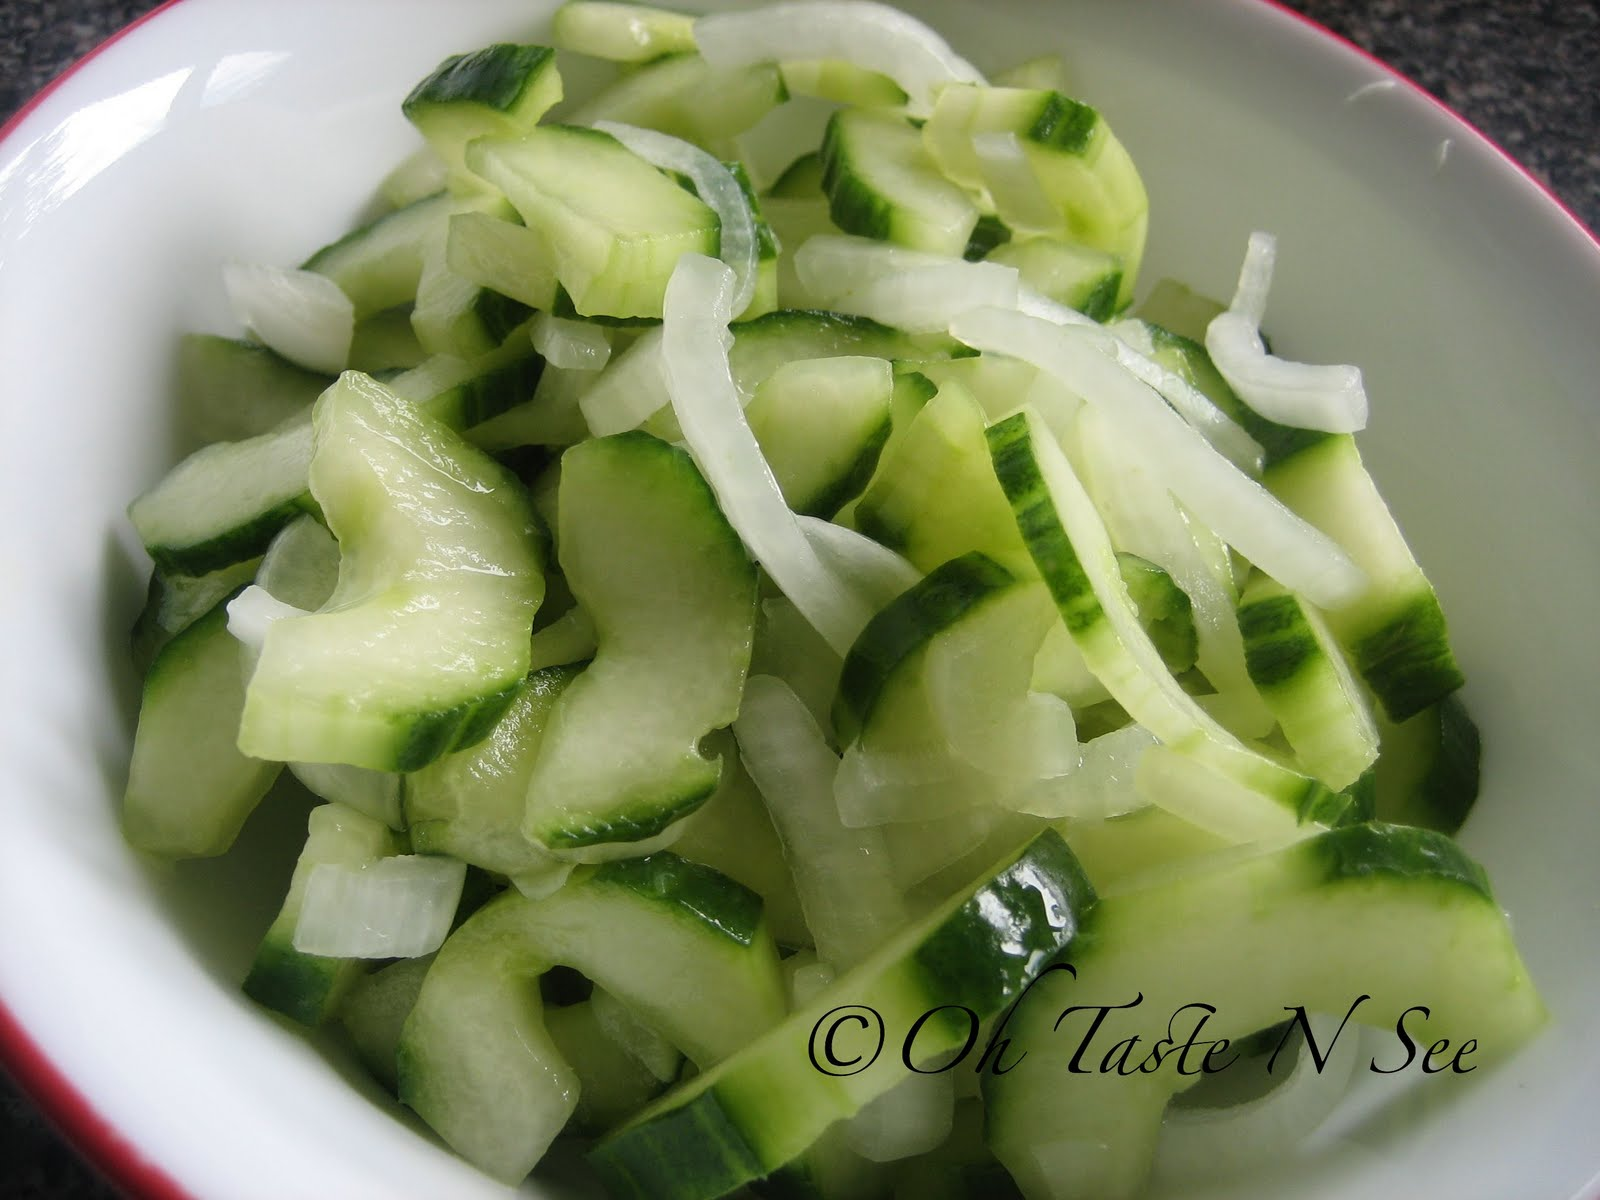 Burmese cucumber onion salad from Denny of Oh Taste n sees